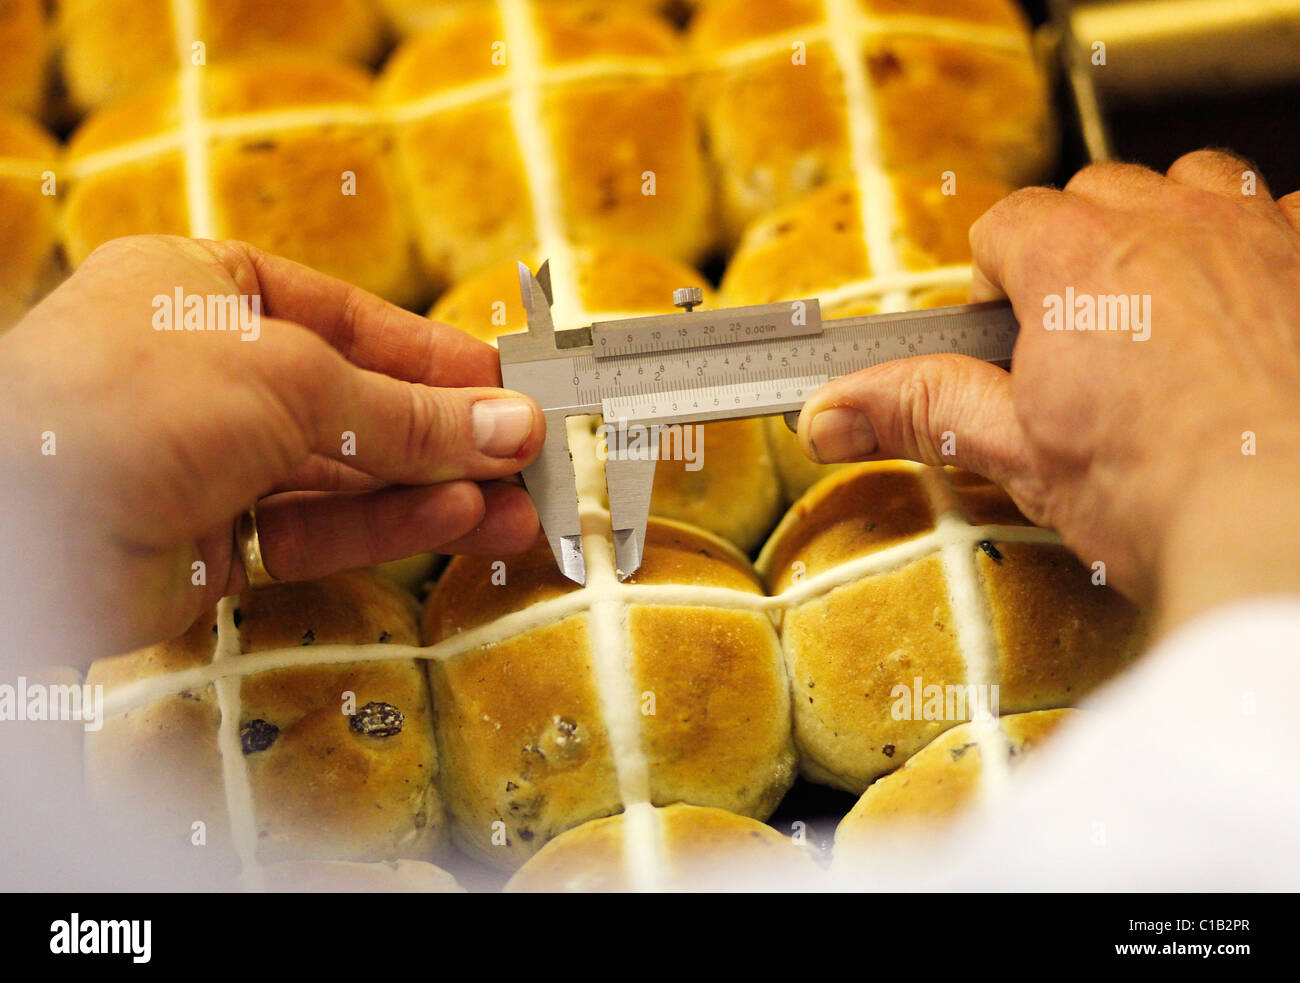 hot-cross-buns-are-made-at-nothern-foods